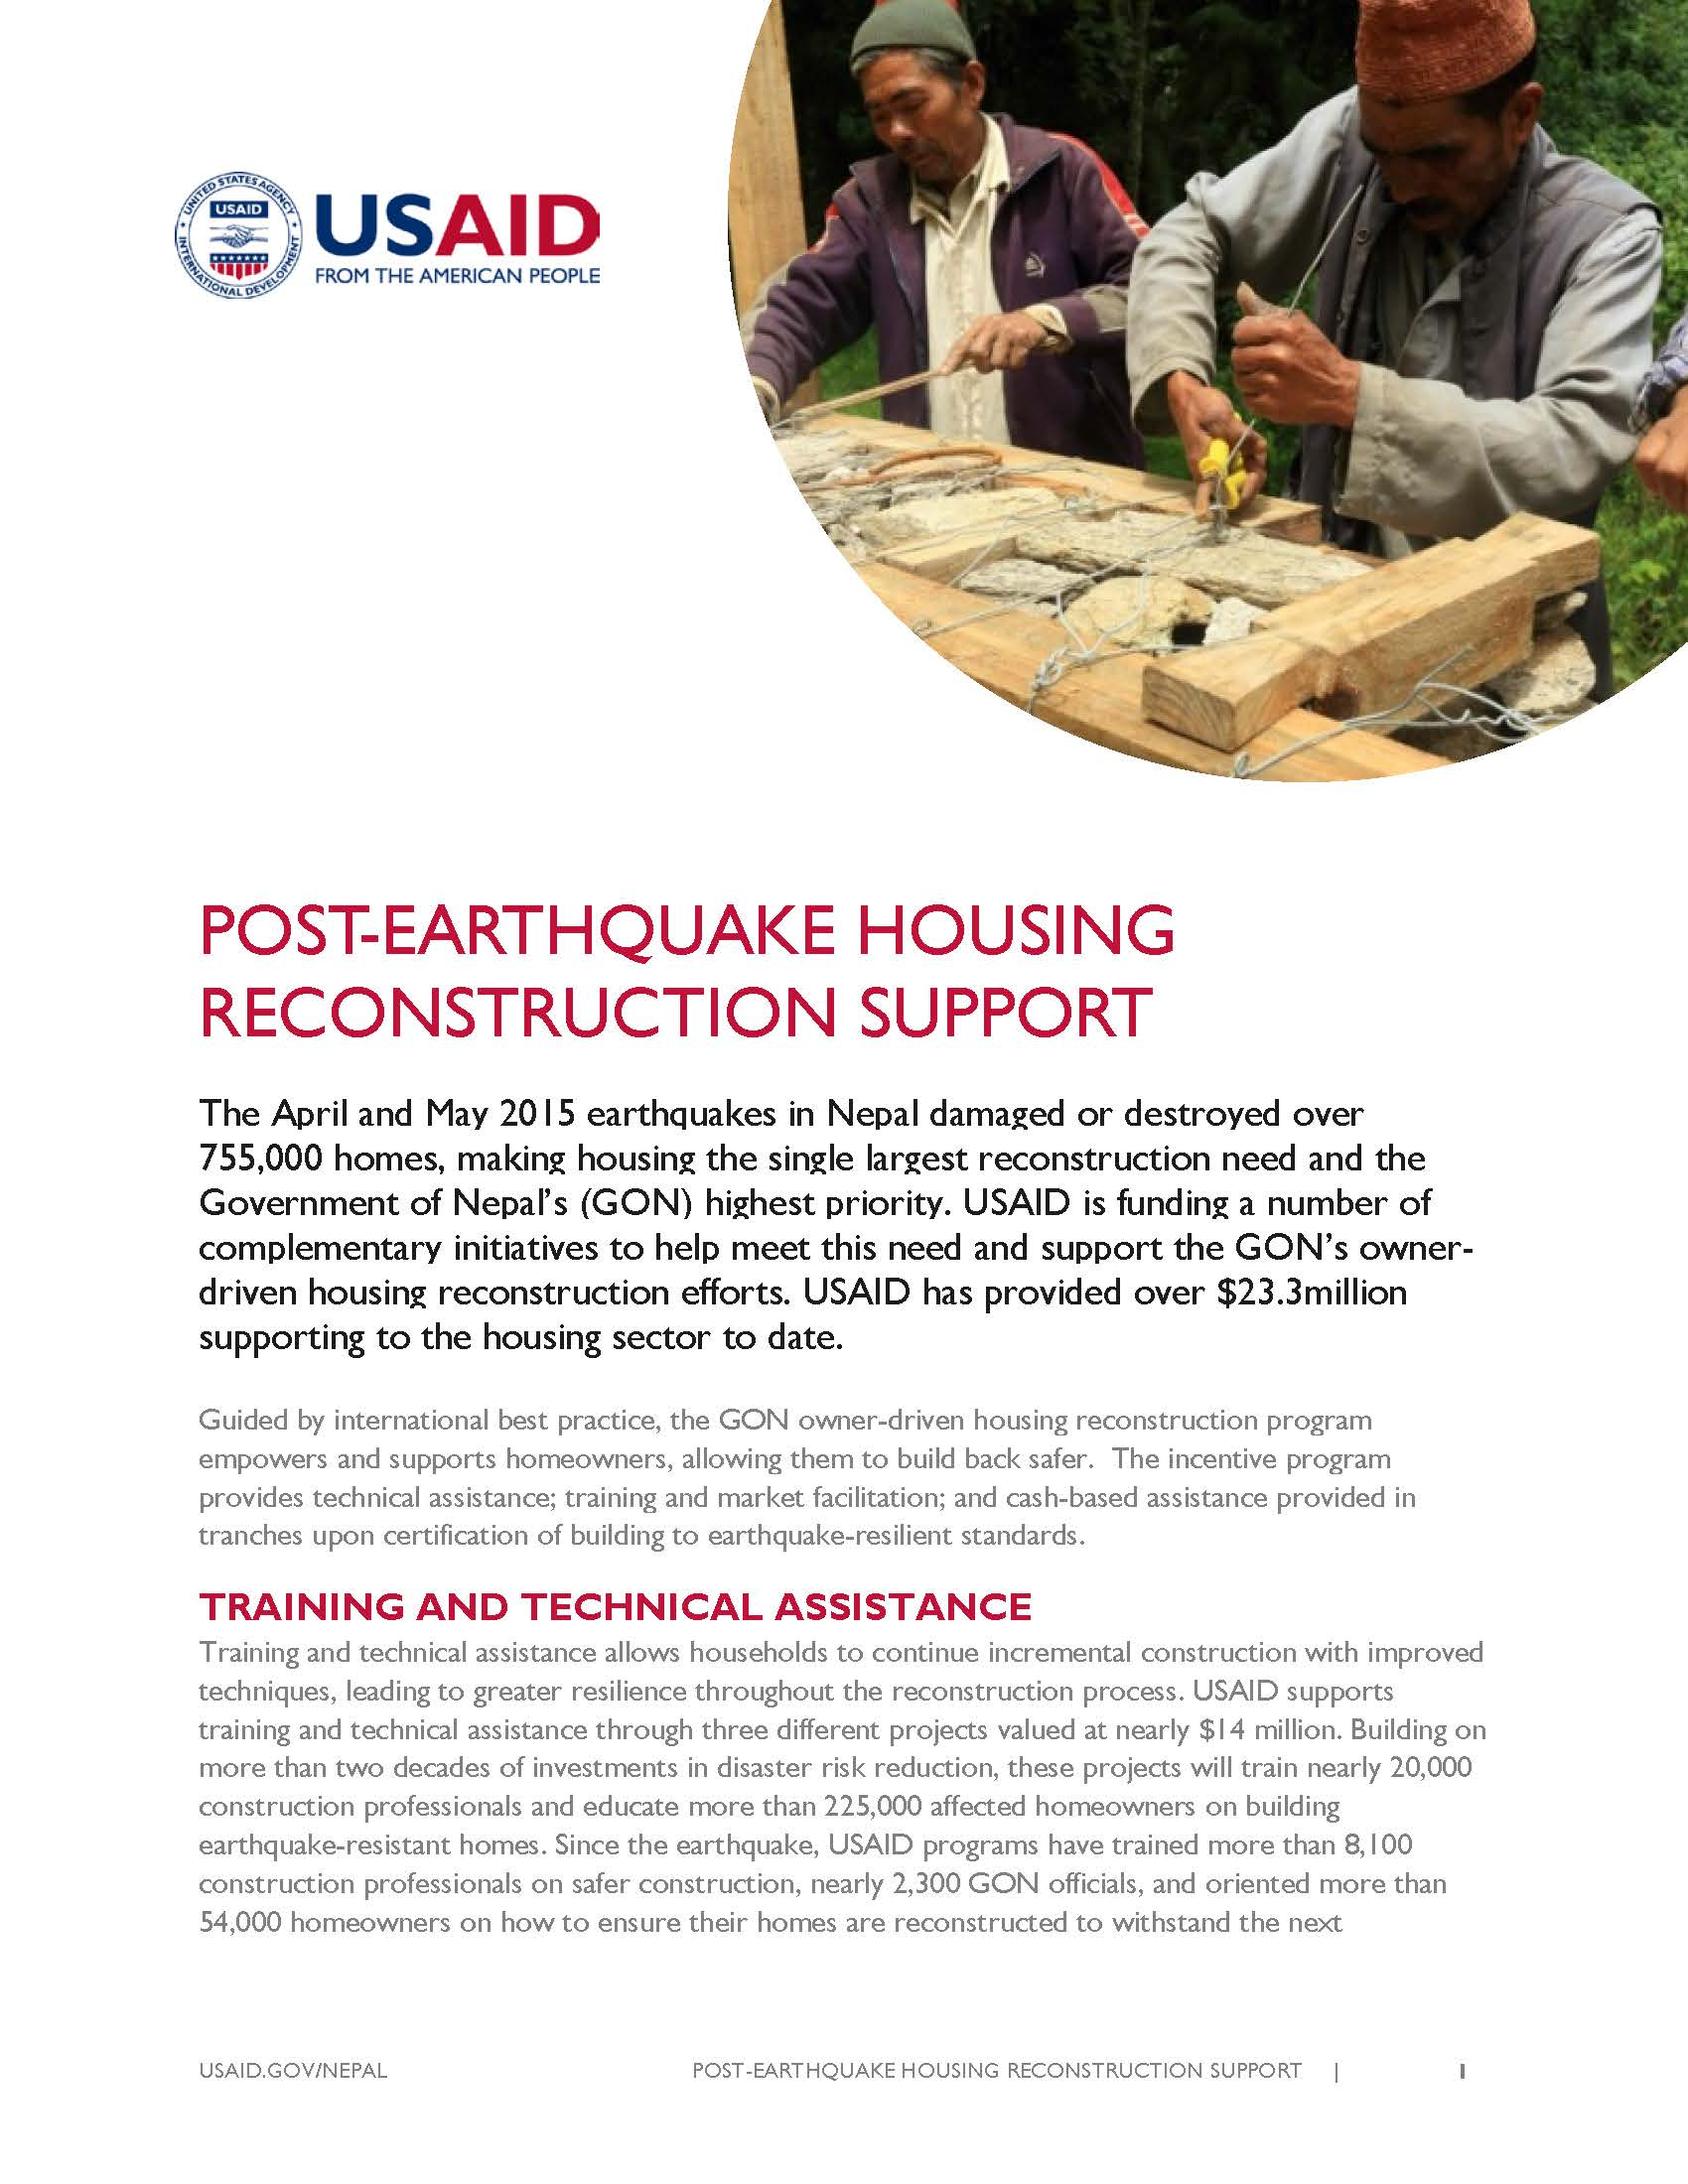 Fact Sheet: POST-EARTHQUAKE HOUSING RECONSTRUCTION SUPPORT